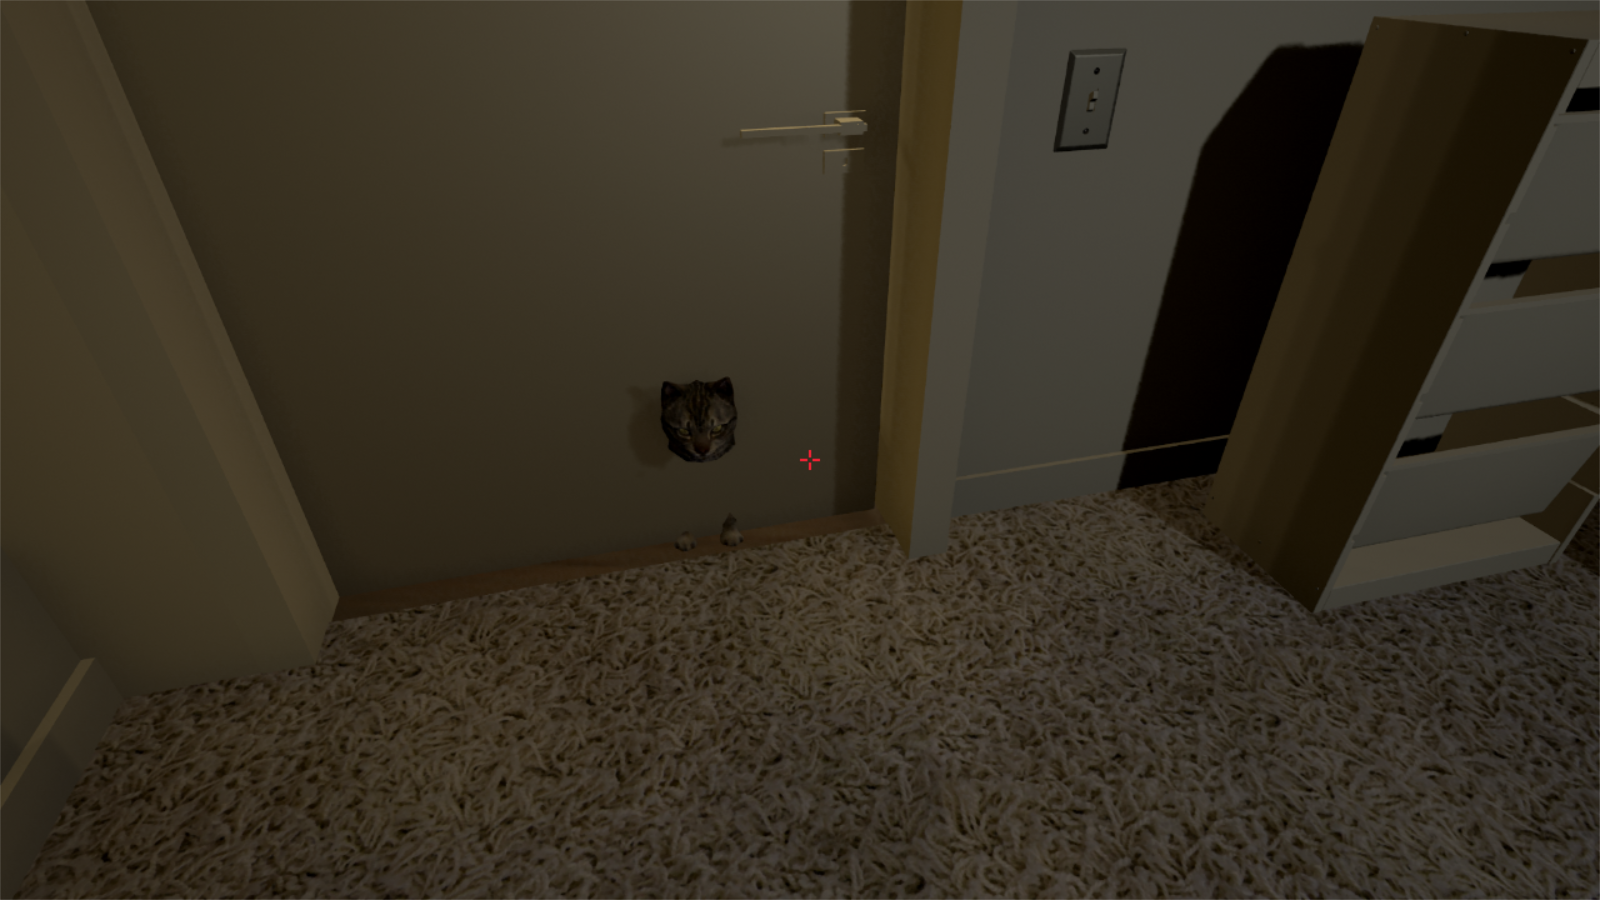 Apartment1: A 3D model of an apartment and one of NovaKitten's very first projects in Unreal. Elaina was entertained by the thought of a cat that would follow you when you weren't looking, even through walls.  She didn't expect the viewers to react with so much shock.